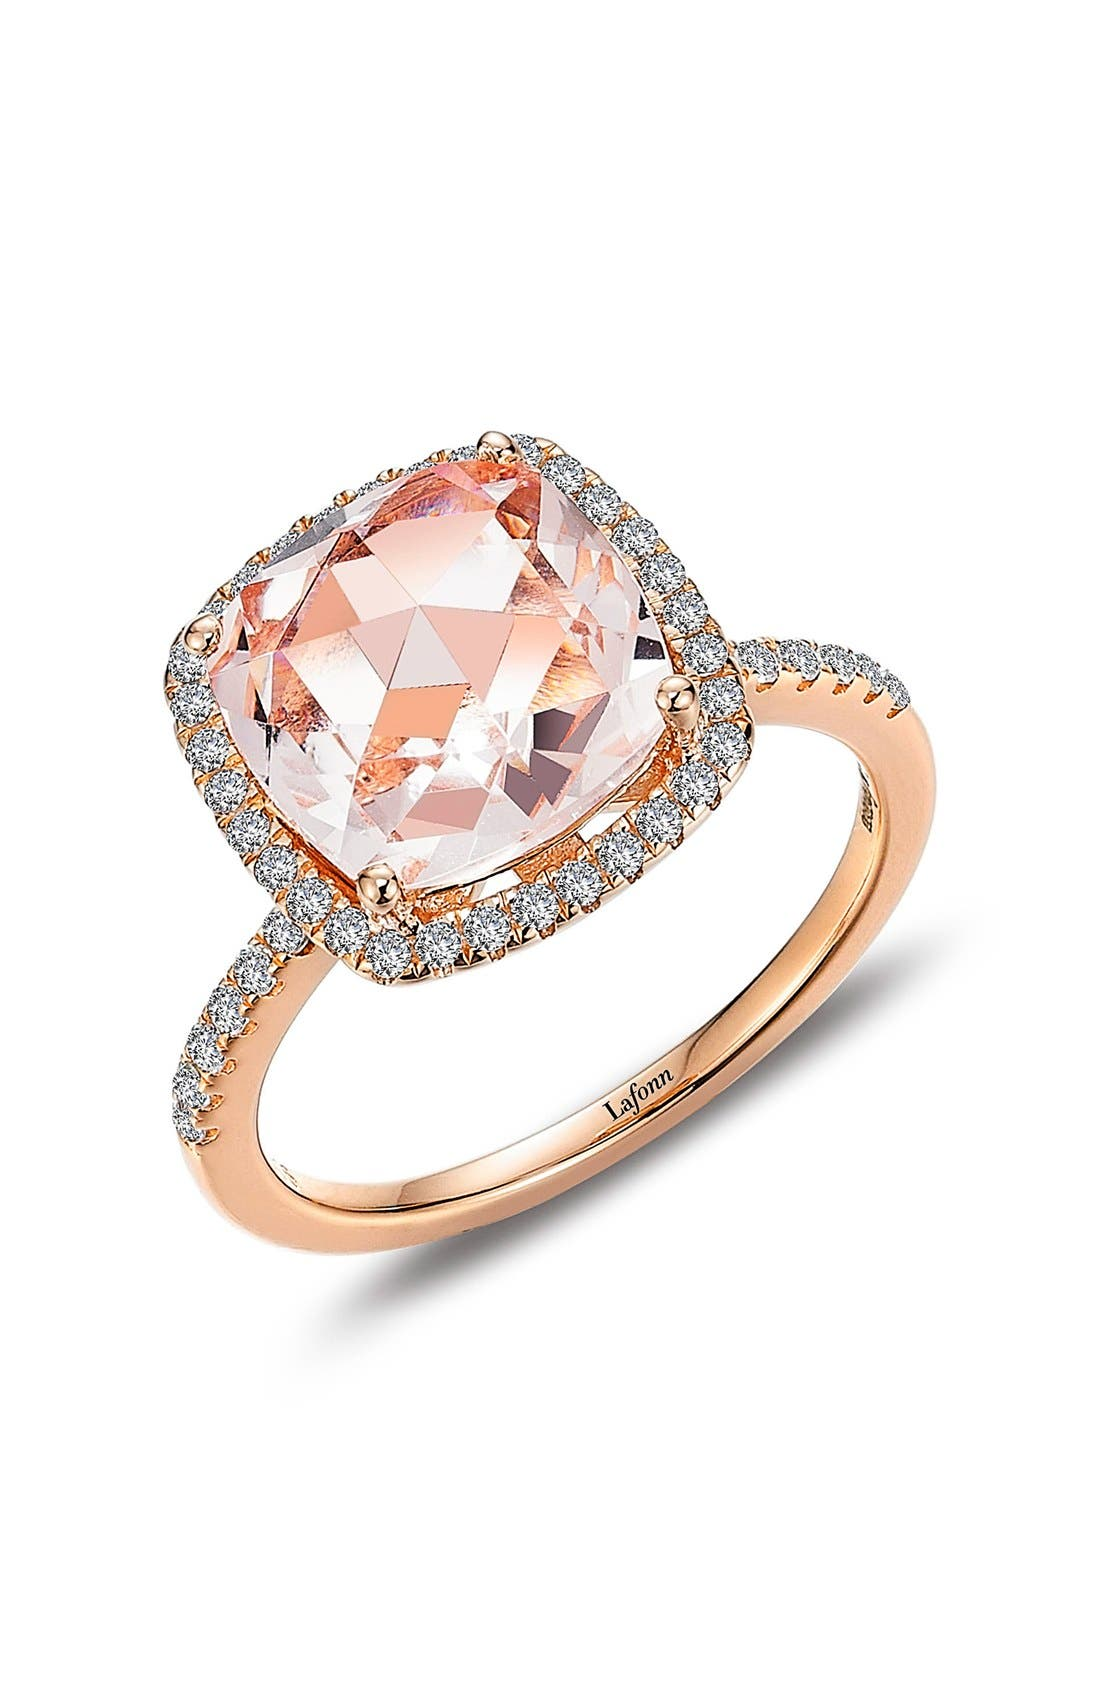 Classic Square Halo Ring,                         Main,                         color, Pink / Rose Gold